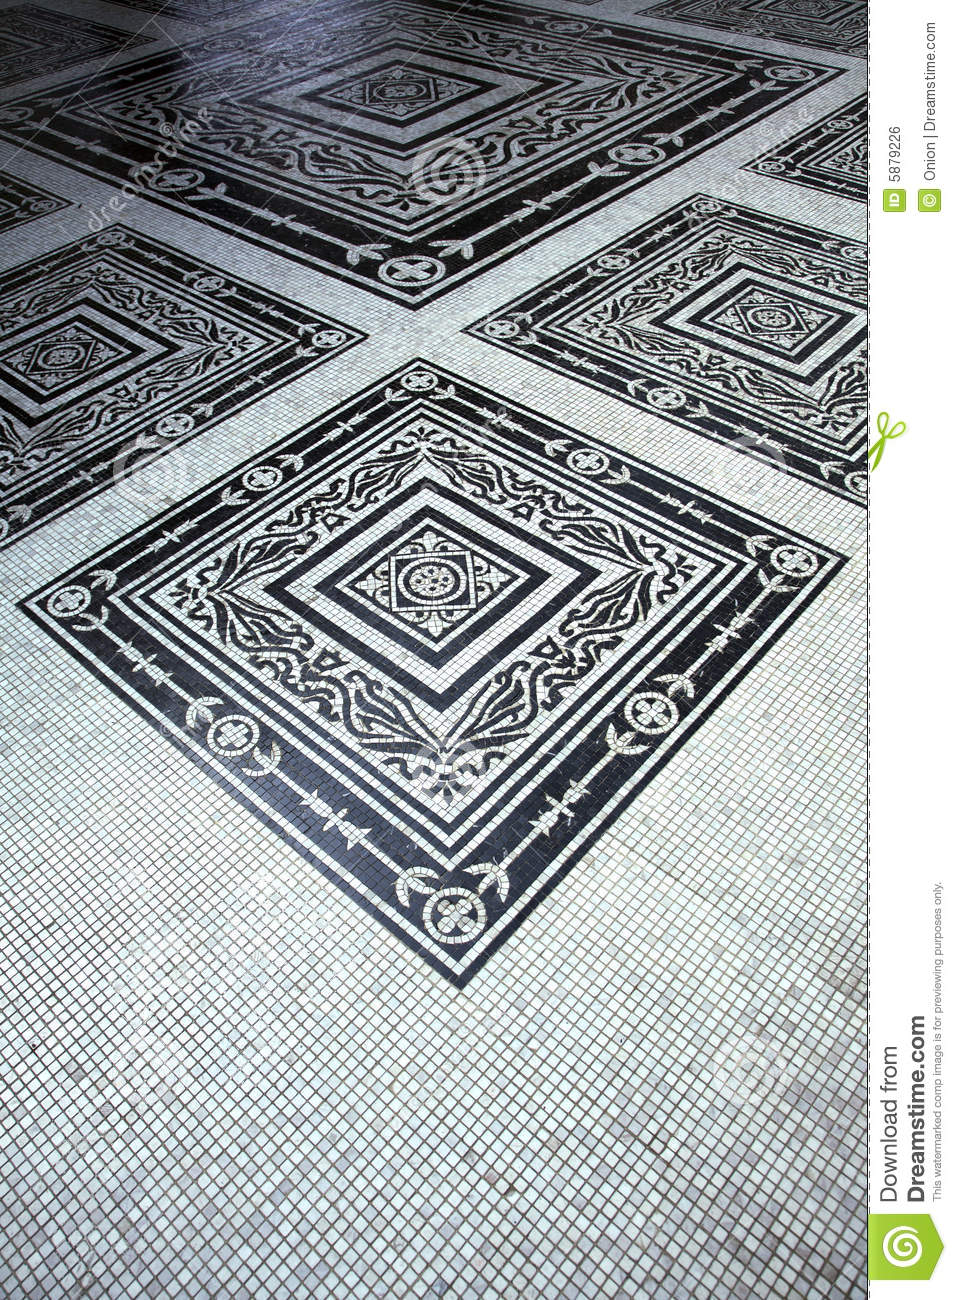 Decorative Floor Tiles Royalty Free Stock Image Image 5879226